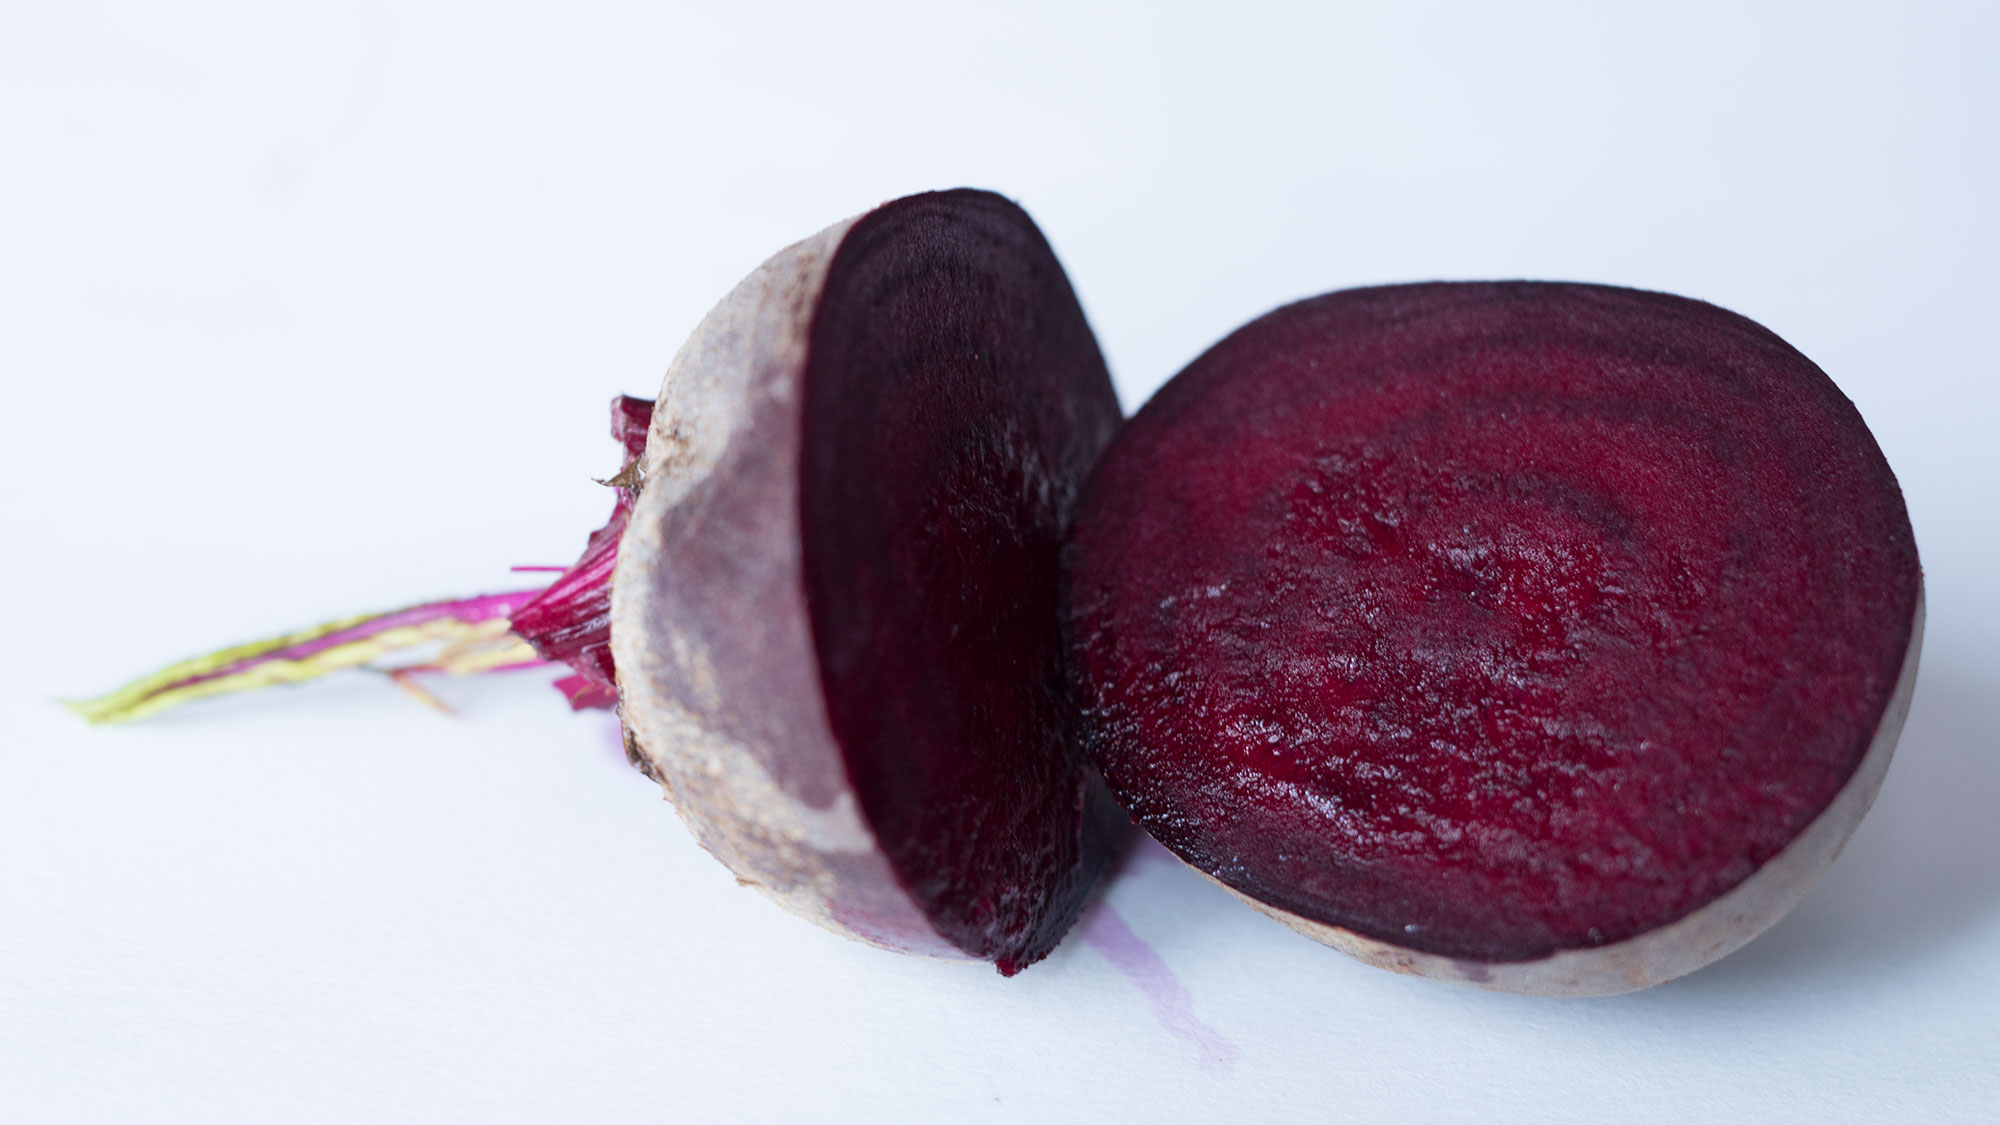 Sliced beetroot